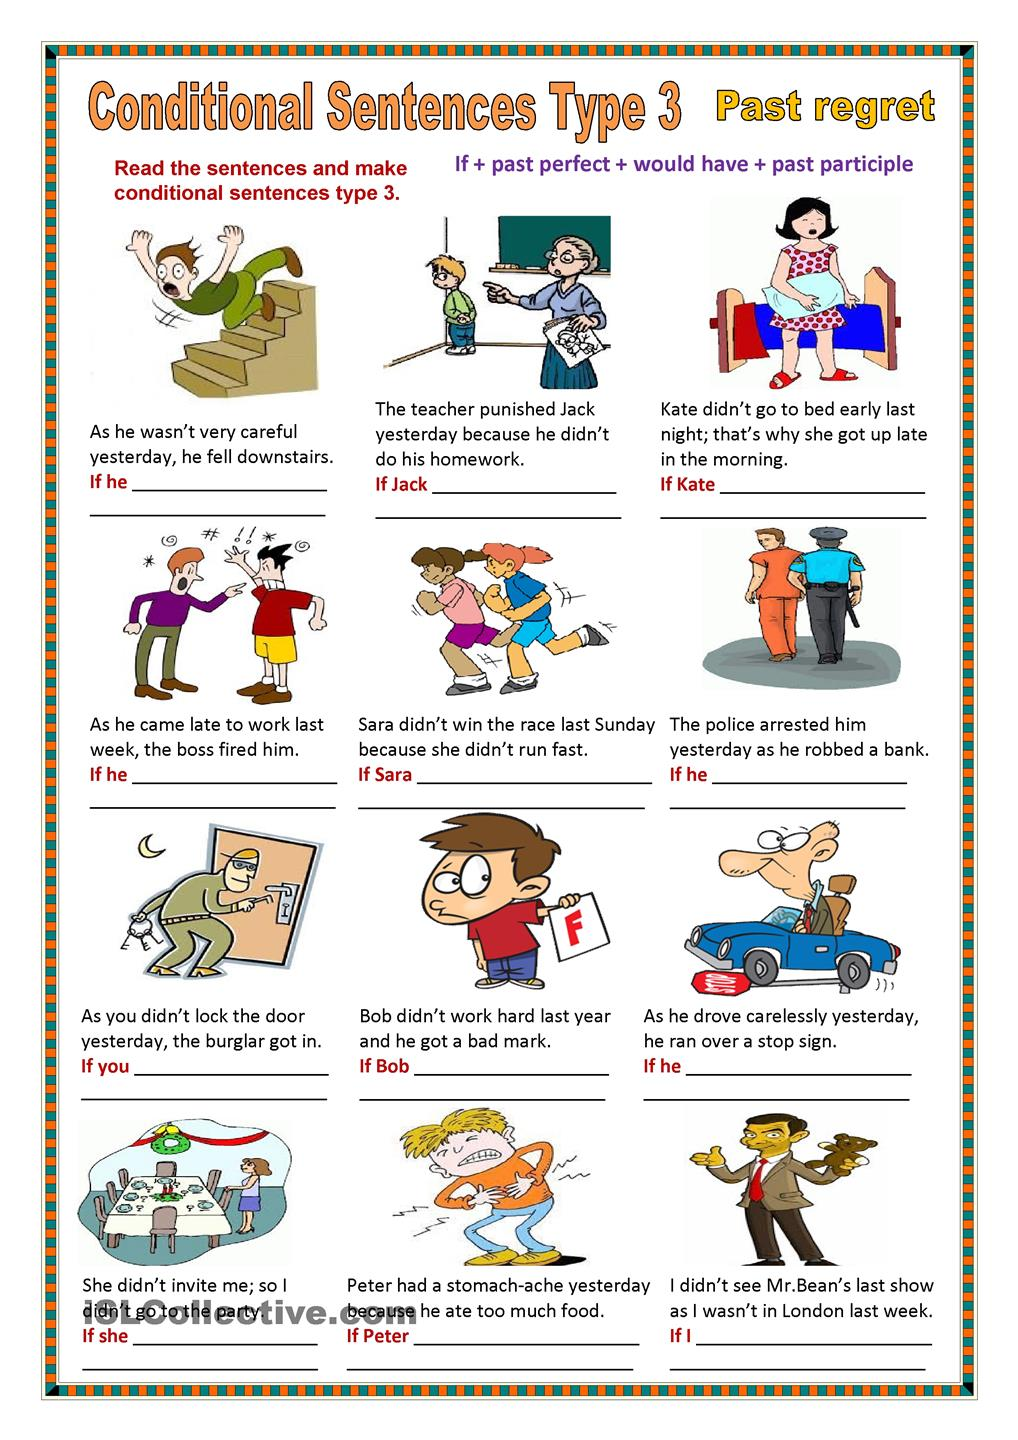 Thought clipart conditional. Sentence types clip art